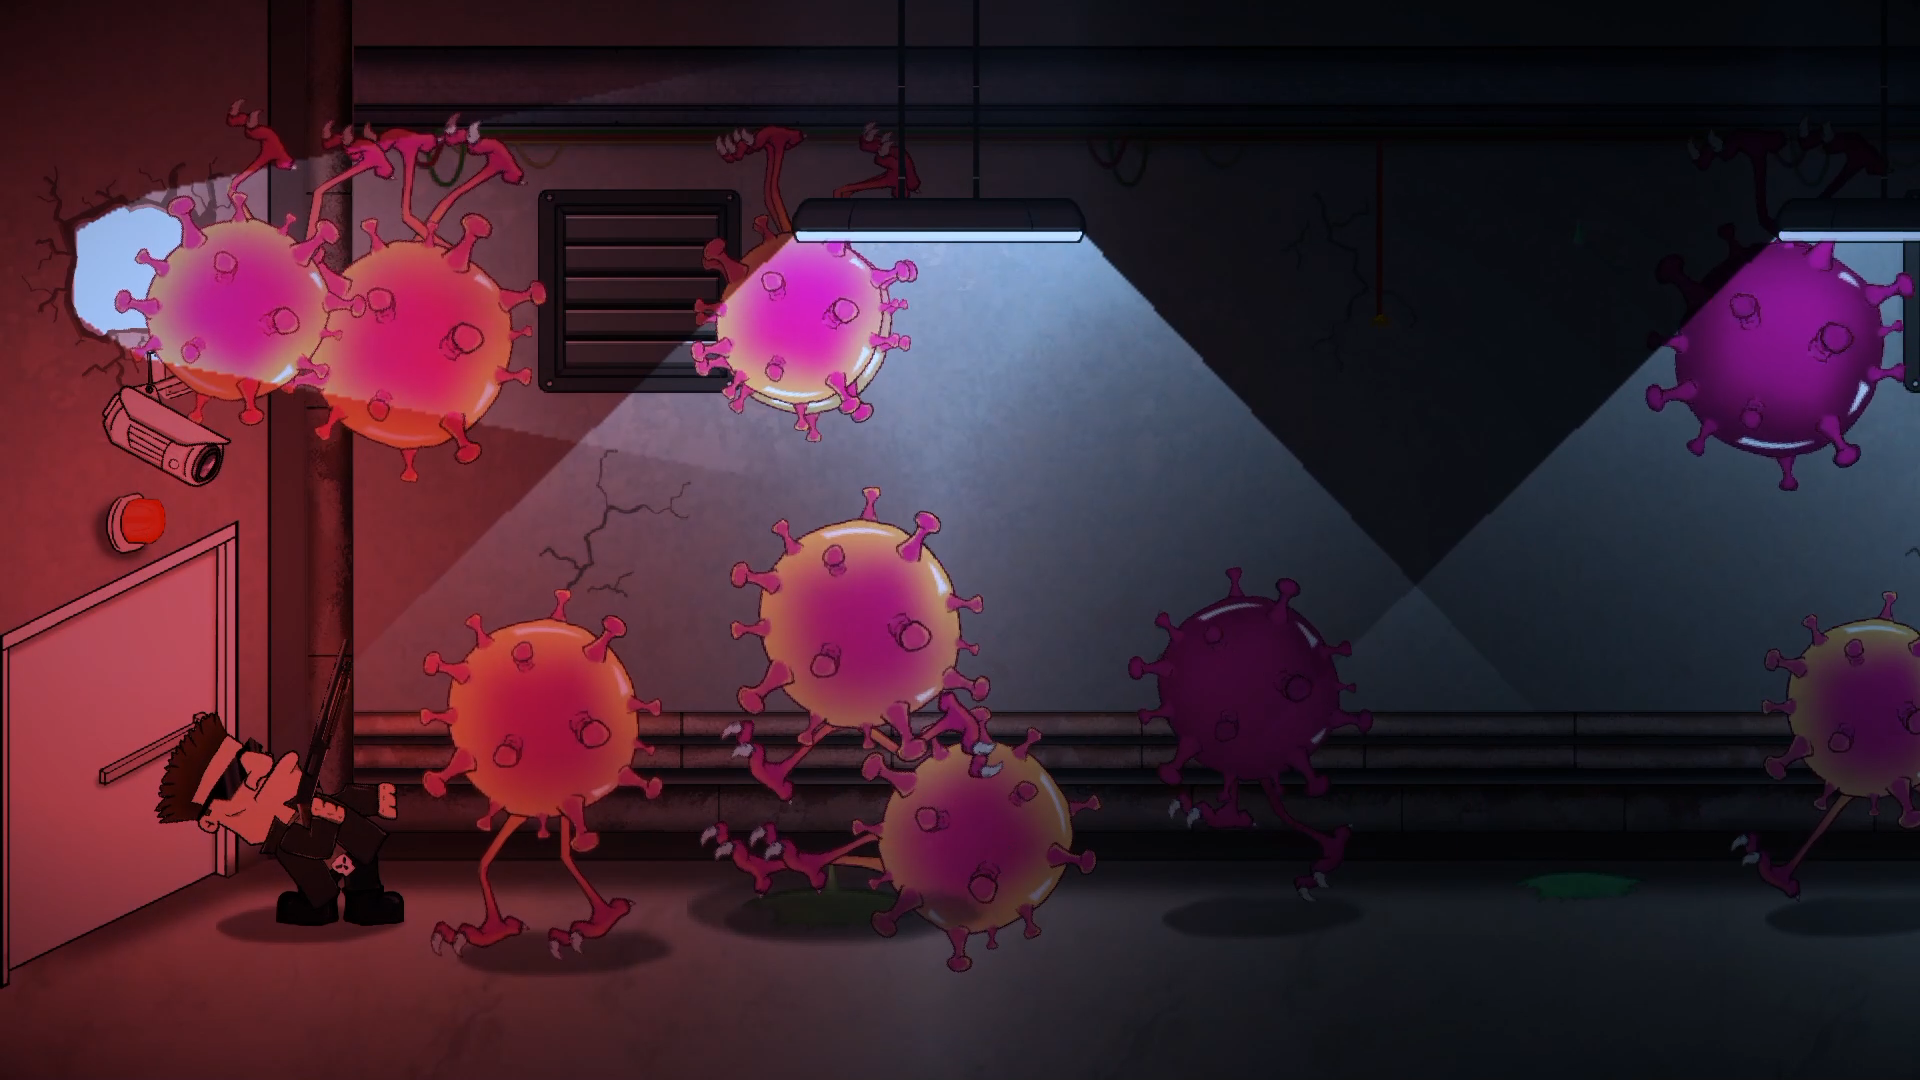 06_Buck_This_Virus_Enemy_Swarm